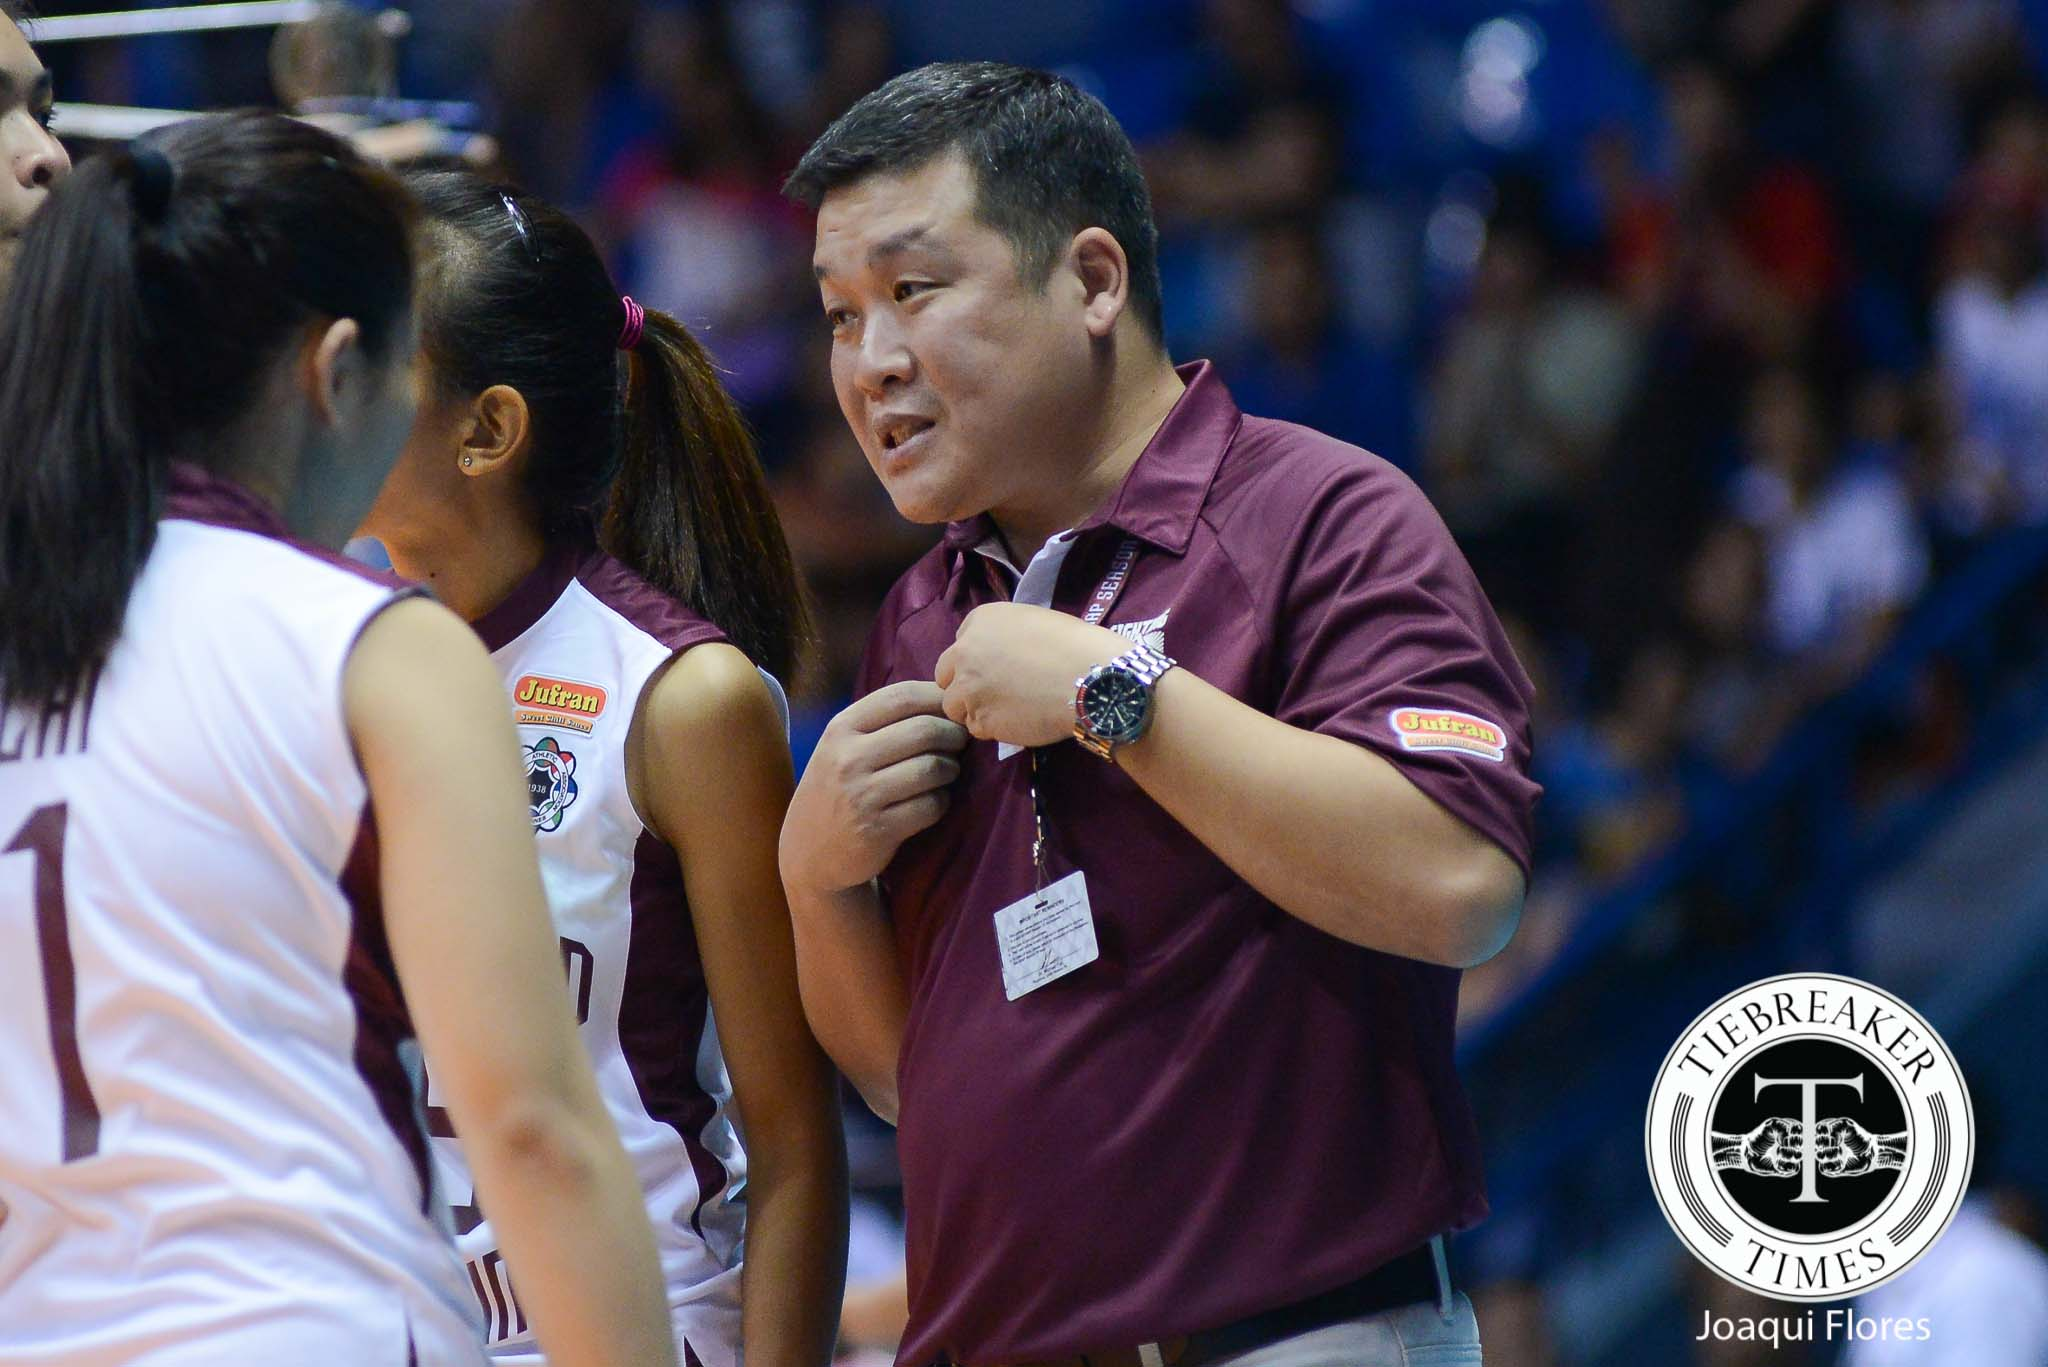 Philippine Sports News - Tiebreaker Times Yee lauds UP's fight, rues finish against Ateneo News UAAP UP Volleyball  UP Lady Maroons UAAP Season 78 Women's Volleyball UAAP Season 78 Jerry Yee